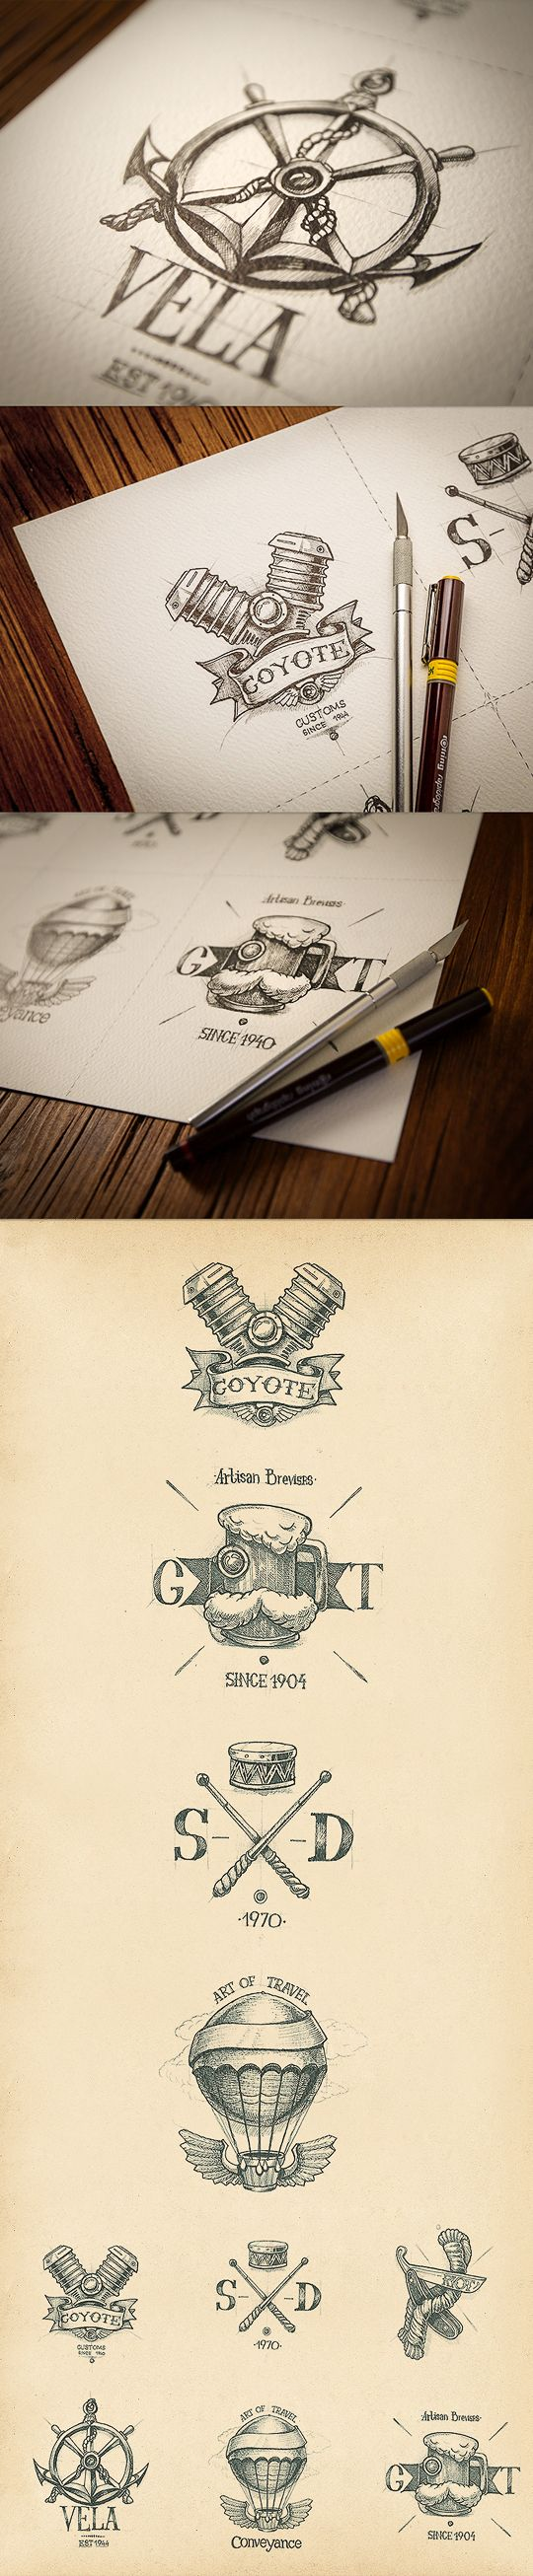 Logotypes collection | 2012-2013 by Mike, via Behance